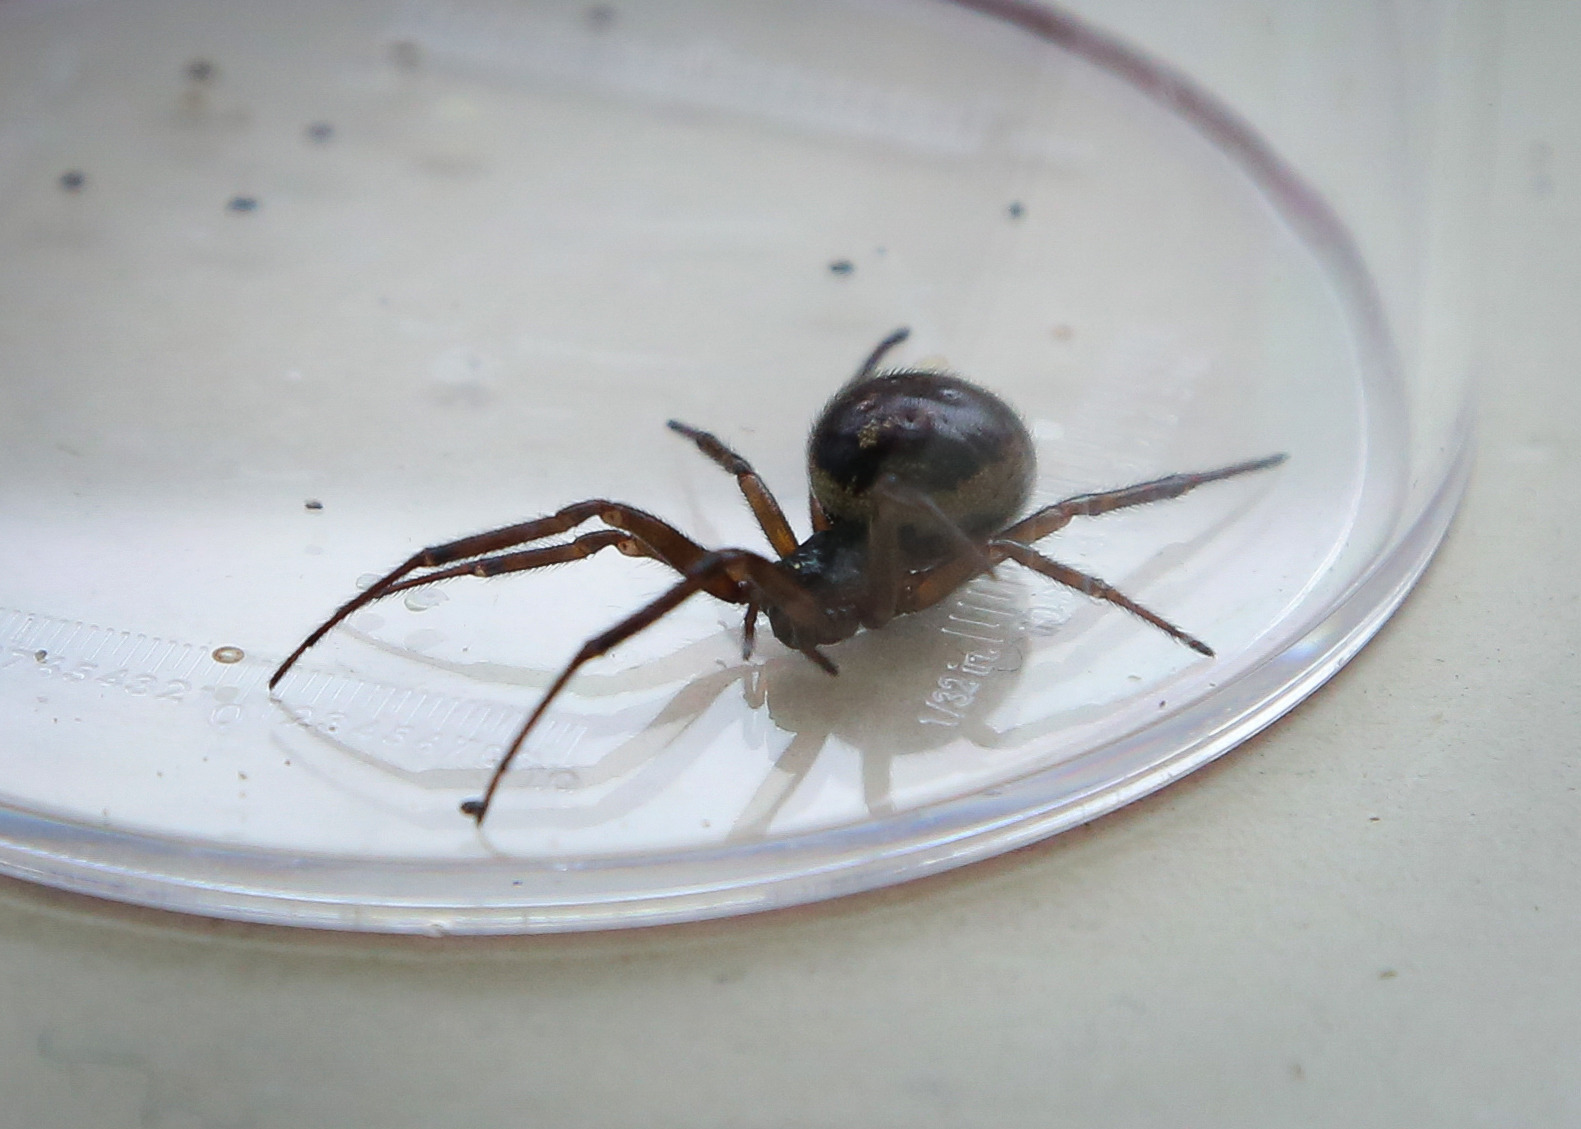 A general view of a False Widow Spider